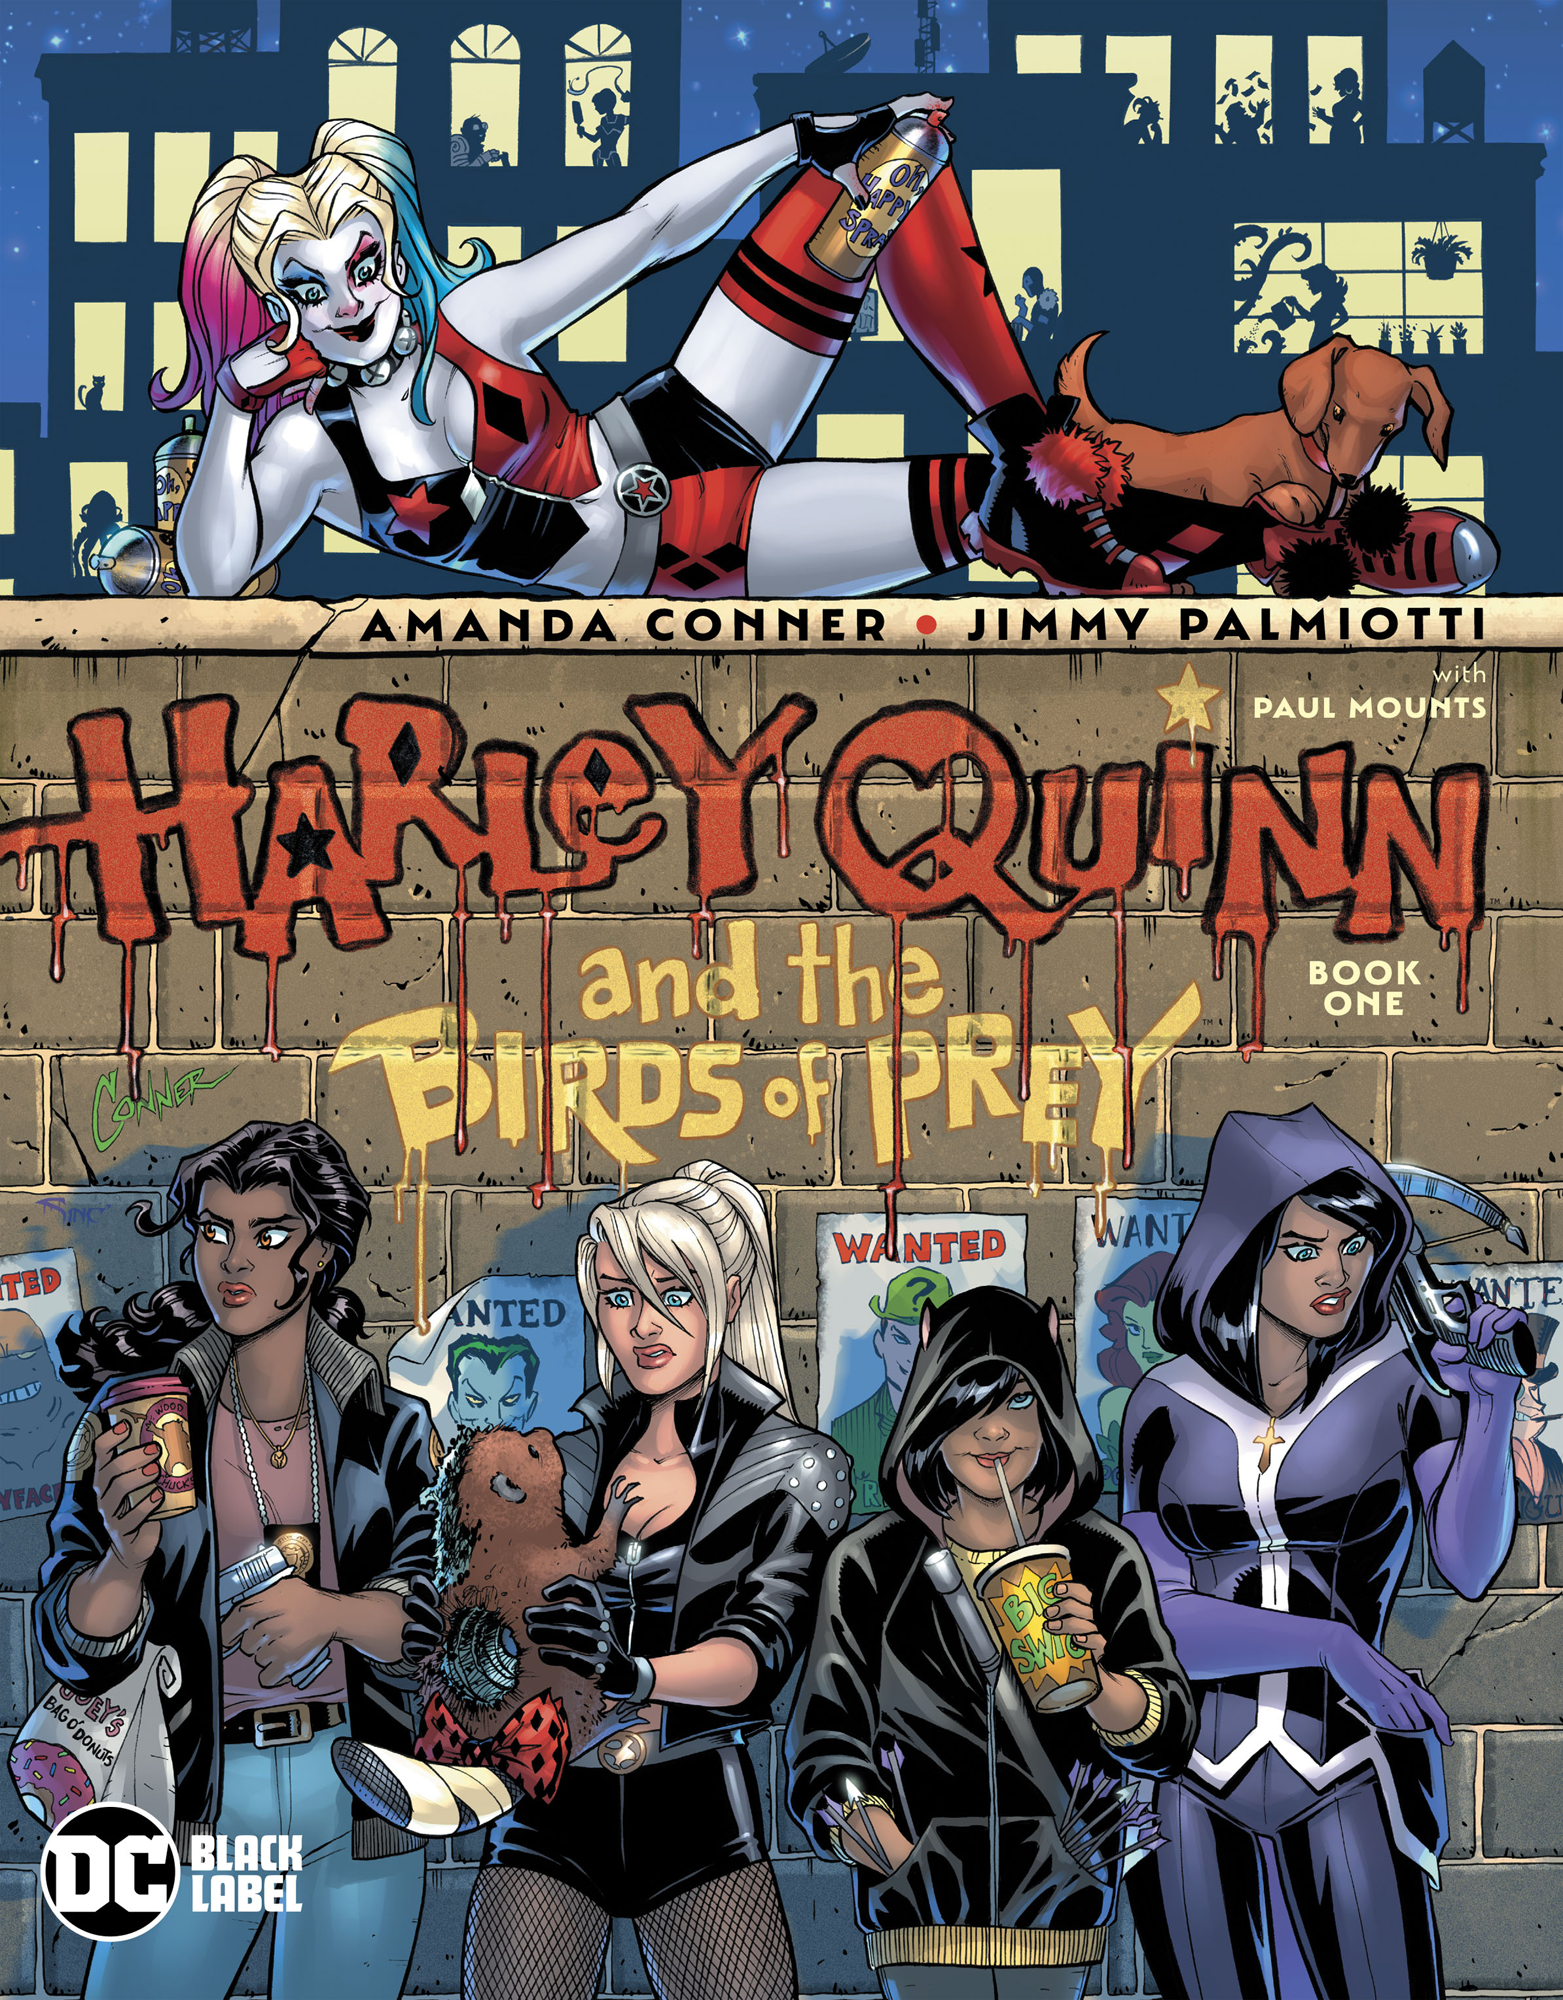 Dec190420 Harley Quinn Birds Of Prey 1 Of 4 Mr Previews World